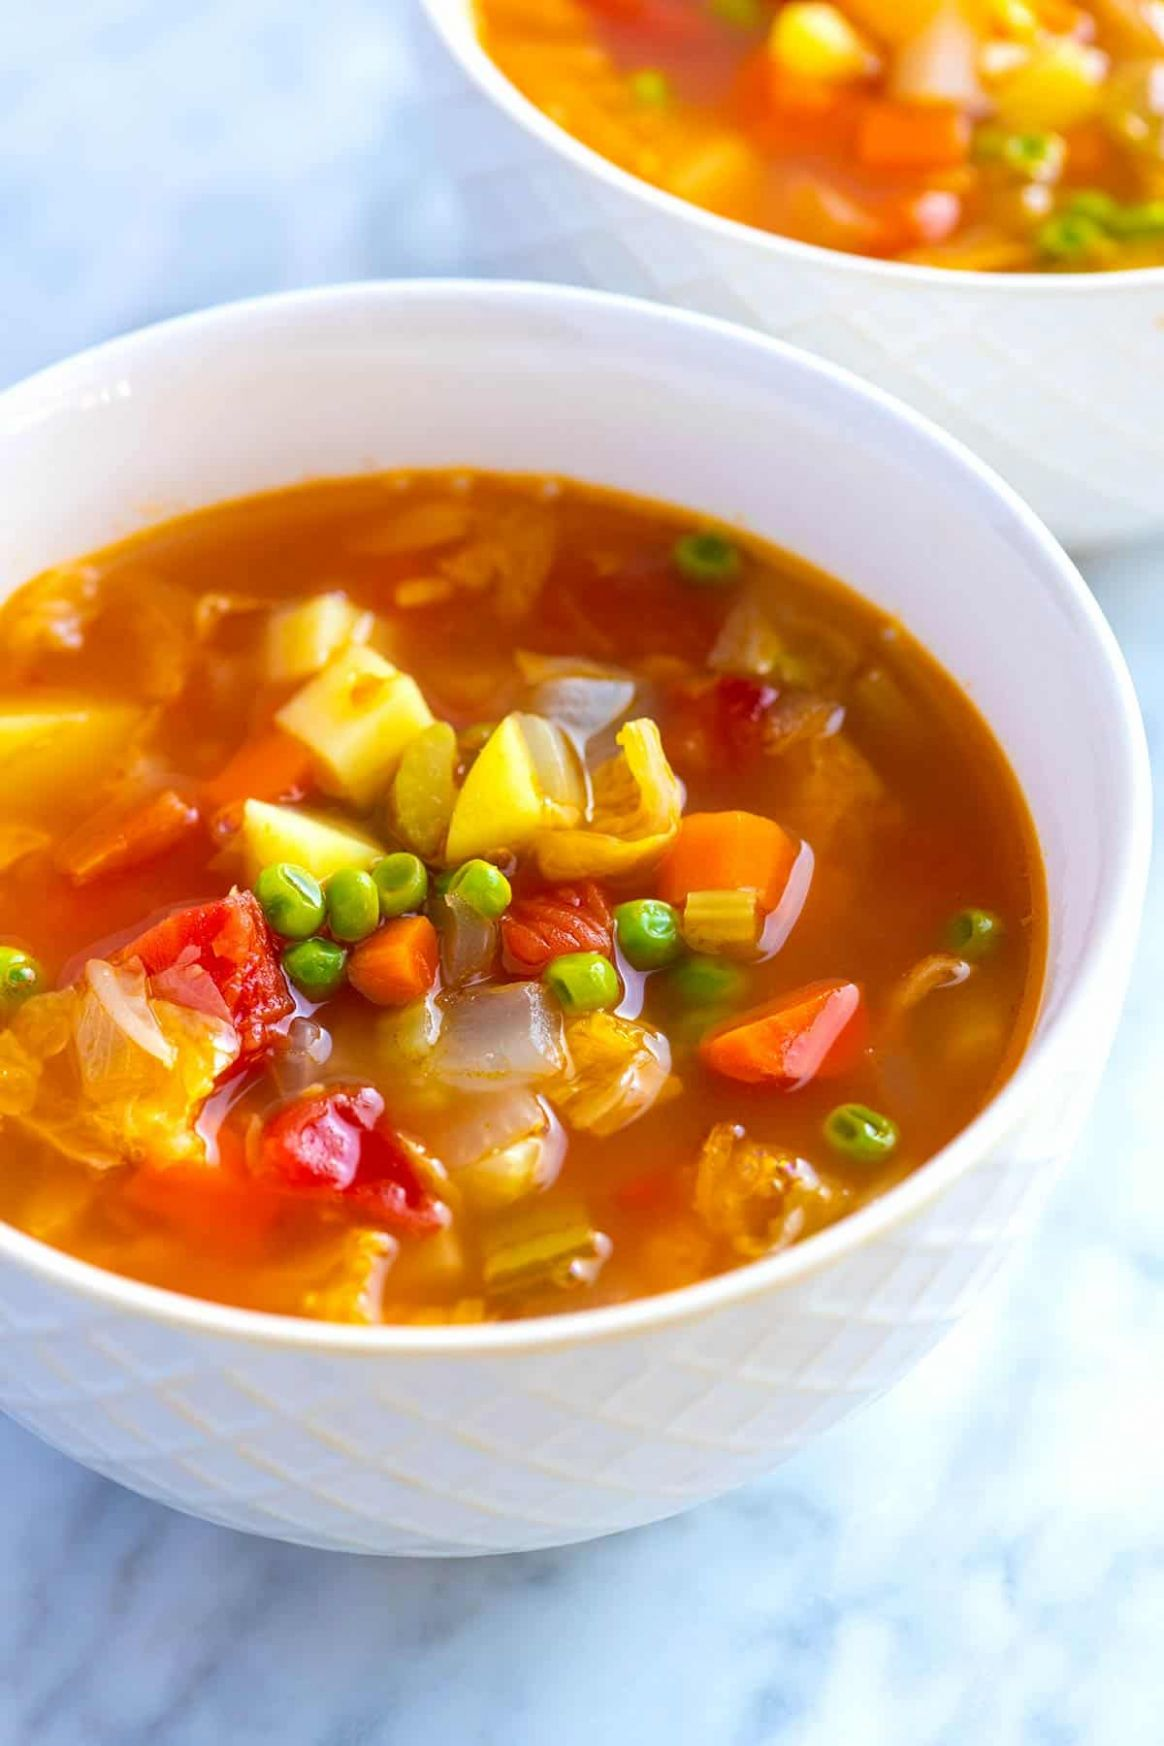 Easy Homemade Vegetable Soup - Recipes For Vegetable Soup